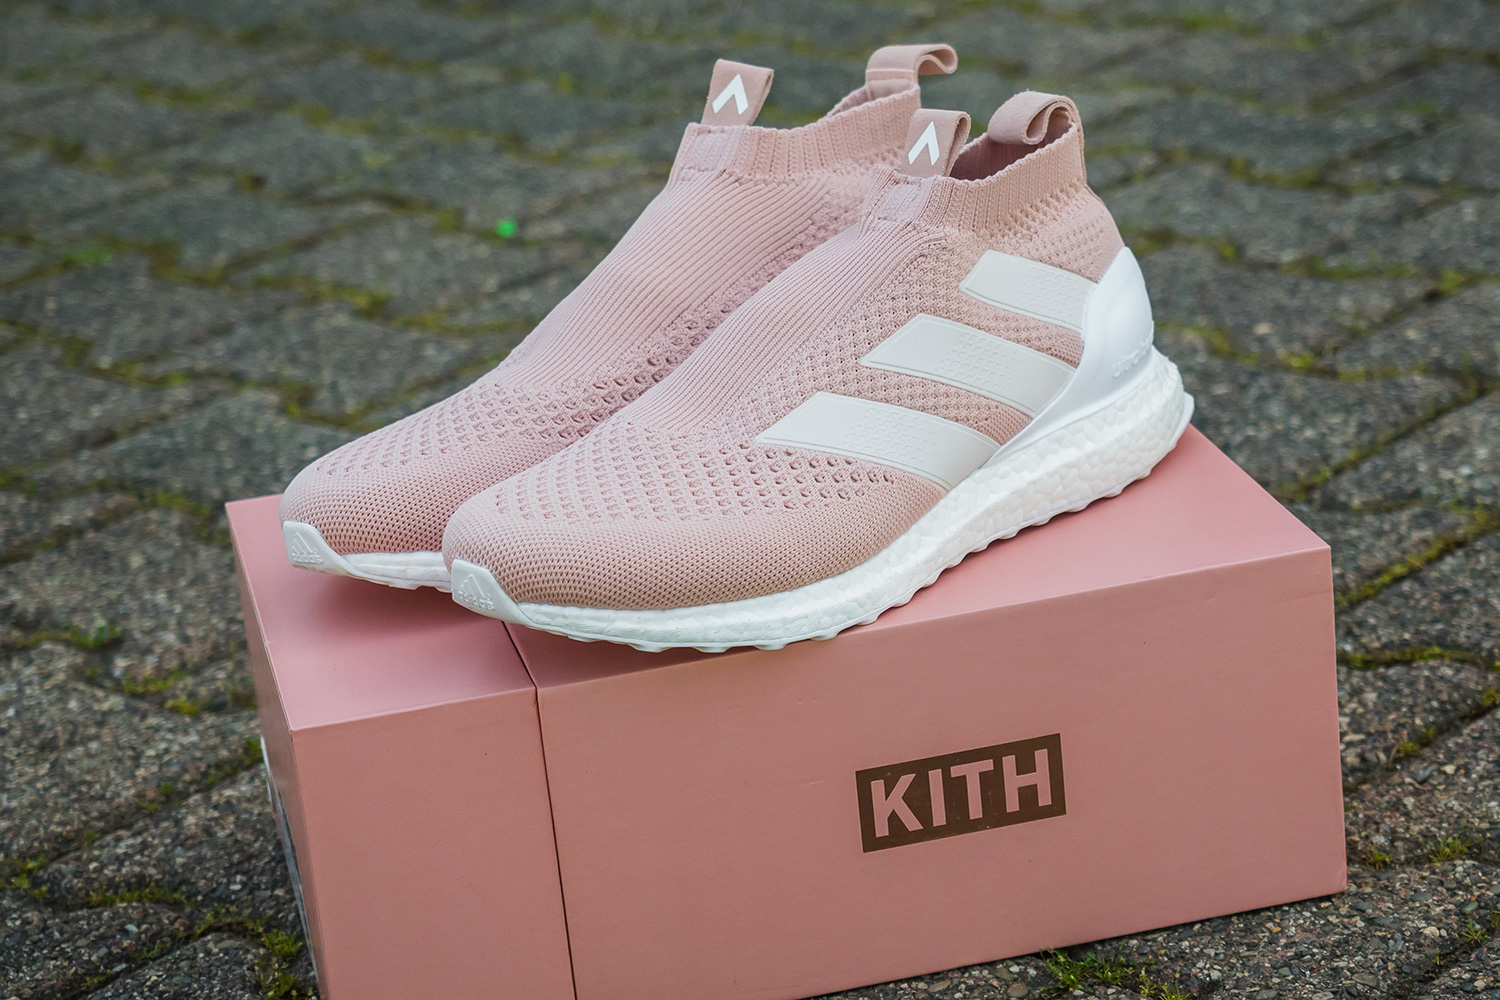 La KITH x Adidas ACE 16 + PureControl Ultra Boost commercialisée prochainement